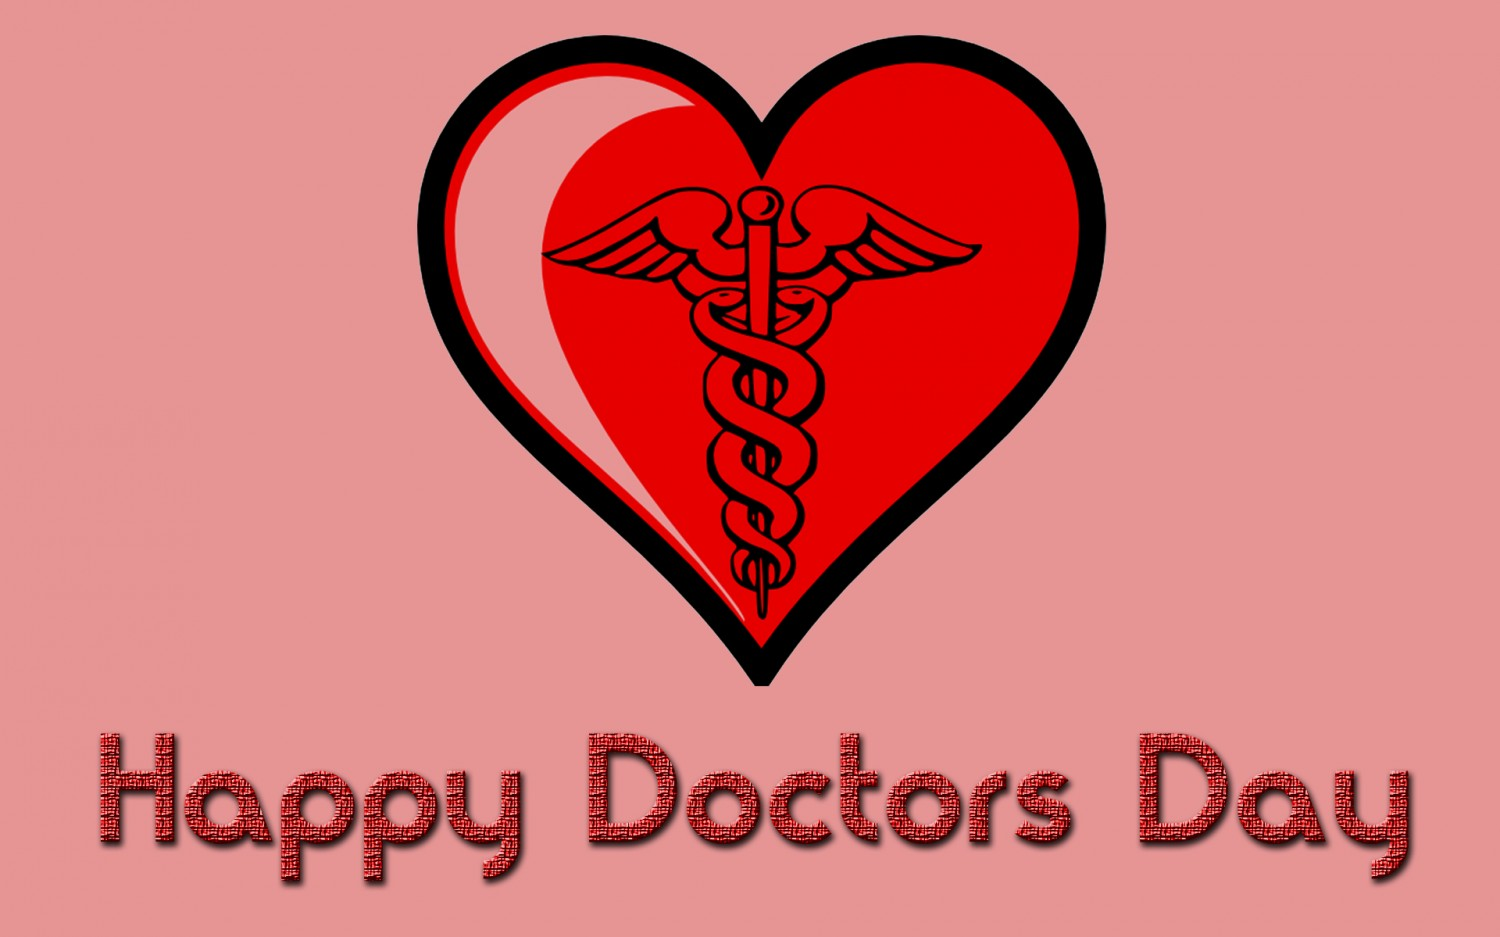 Doctors Day 2017 Wallpaper free download